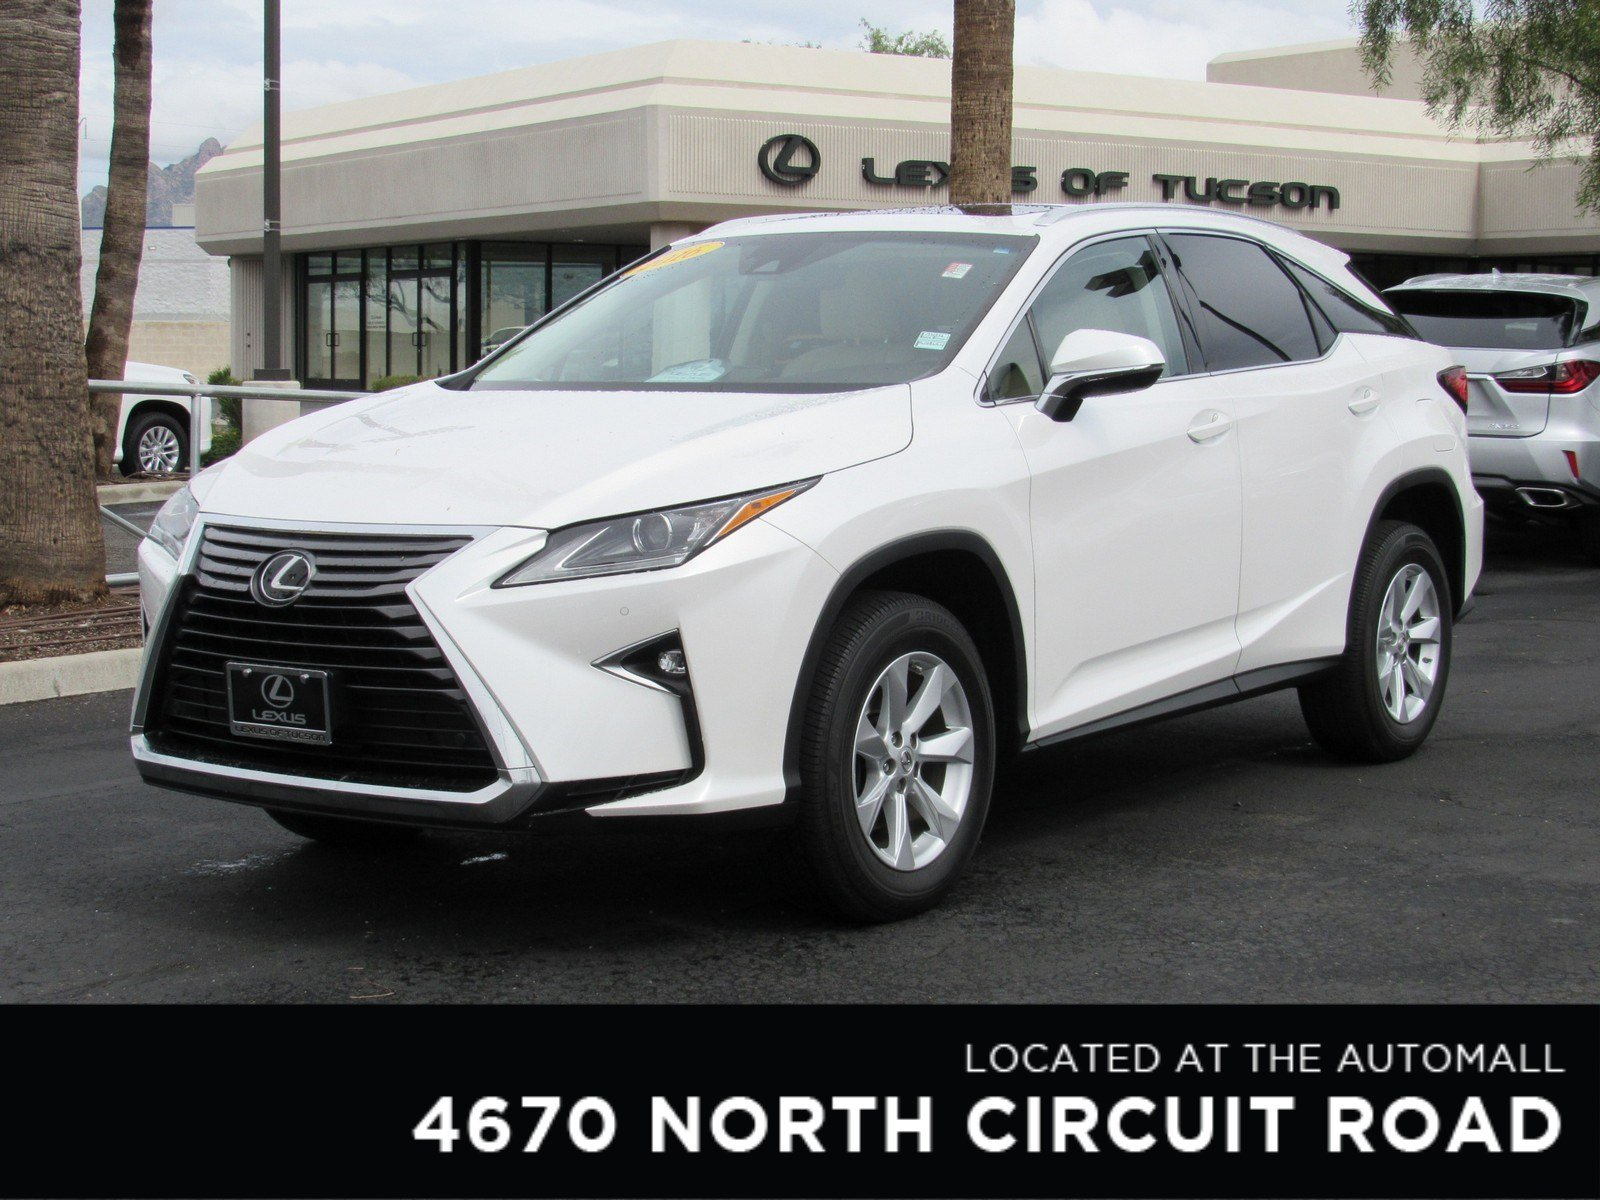 Certified Pre Owned 2016 Lexus RX 350 Sport Utility in Tucson